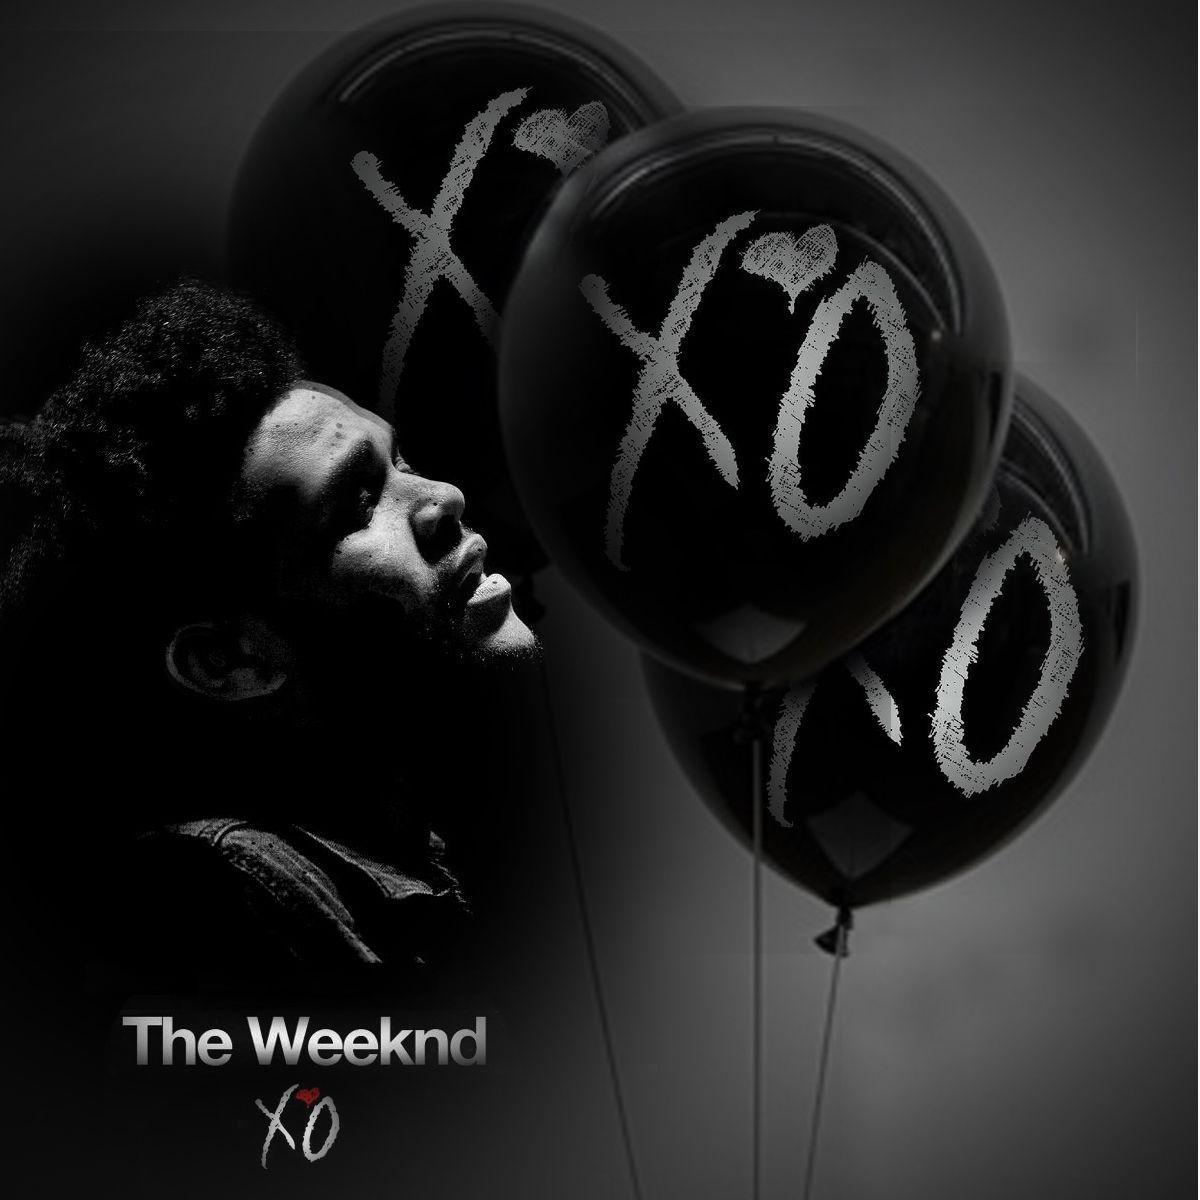 Similiar House Of Balloons The Weeknd Wallpaper Keywords